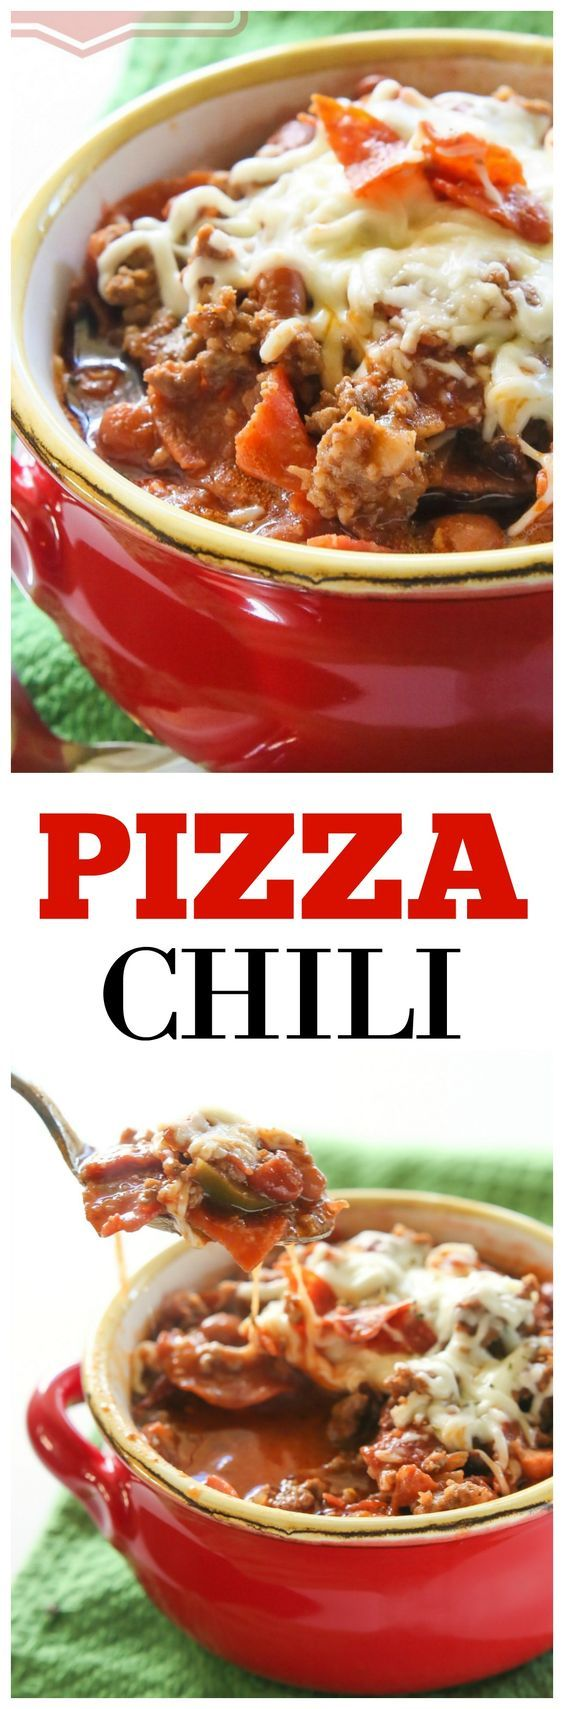 Pizza Chili - beef, sausage, pepperoni, and green peppers simmering in a salsa pizza sauce. the-girl-who-ate-everything.com